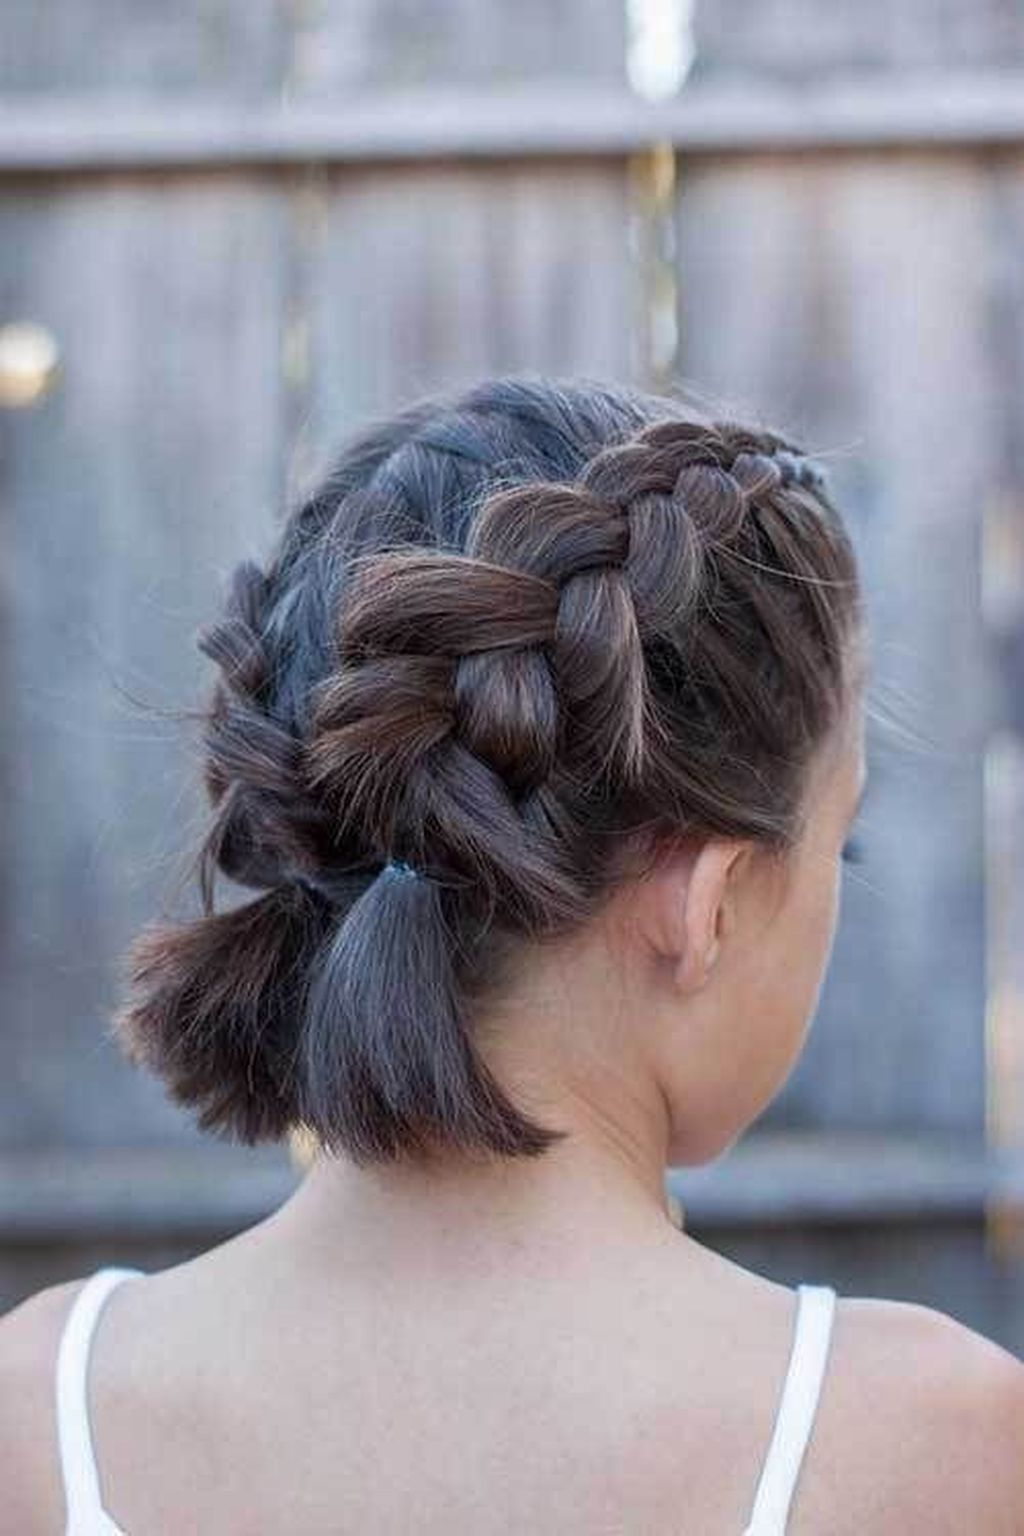 lovely braided short hairstyles ideas match for fall season